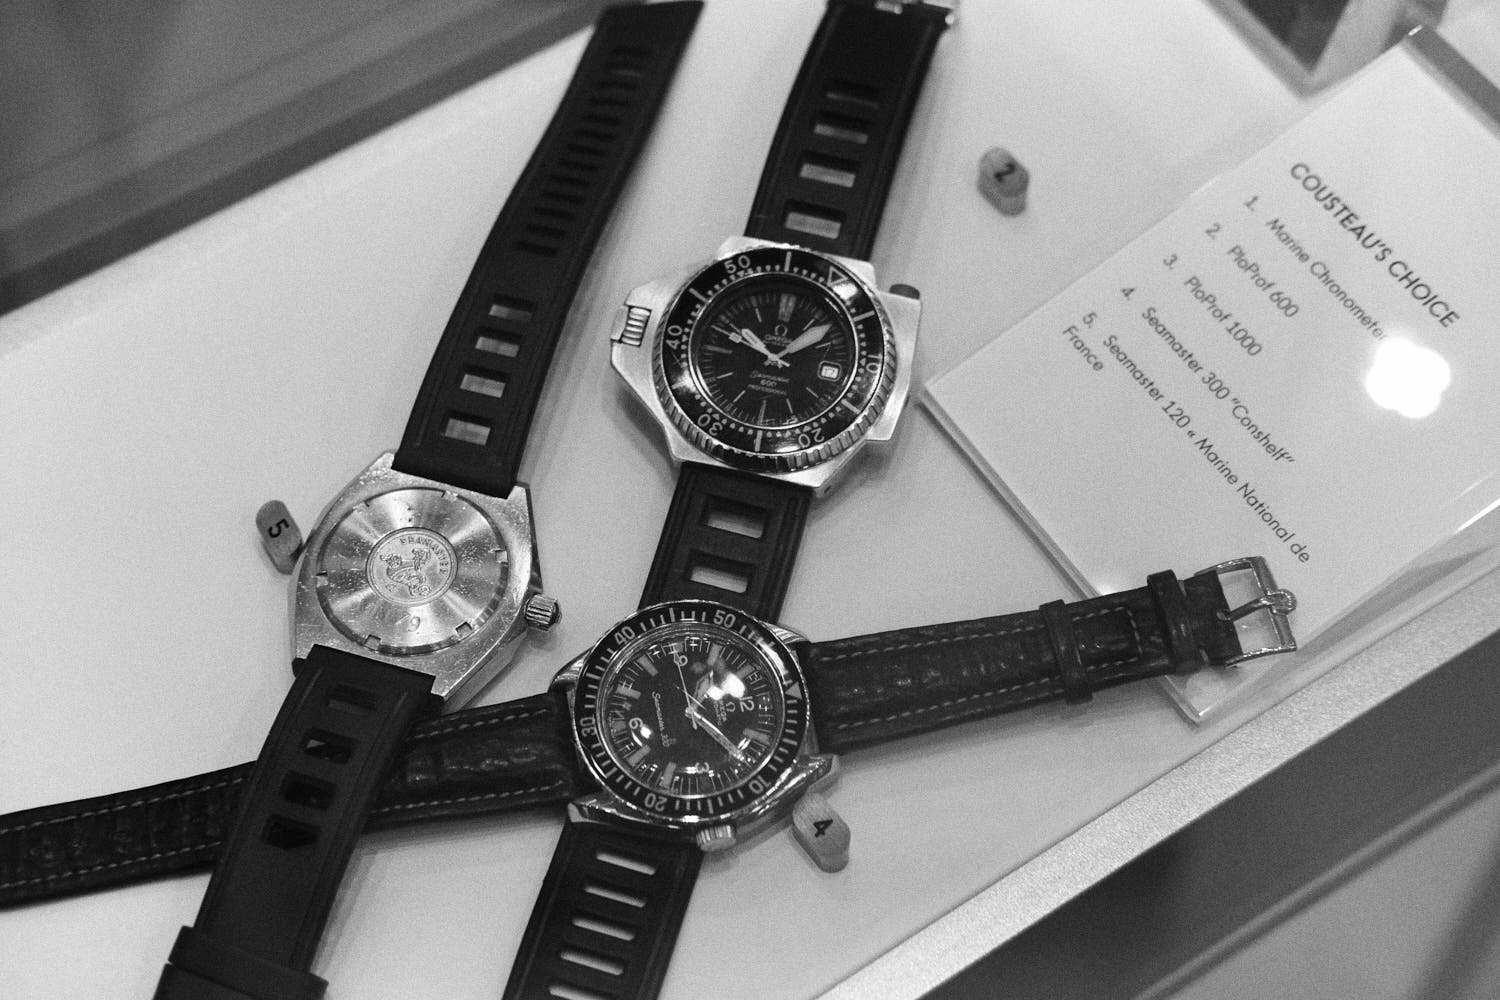 cousteau1-Omega-Museum-Visit-Monochrome-Watches